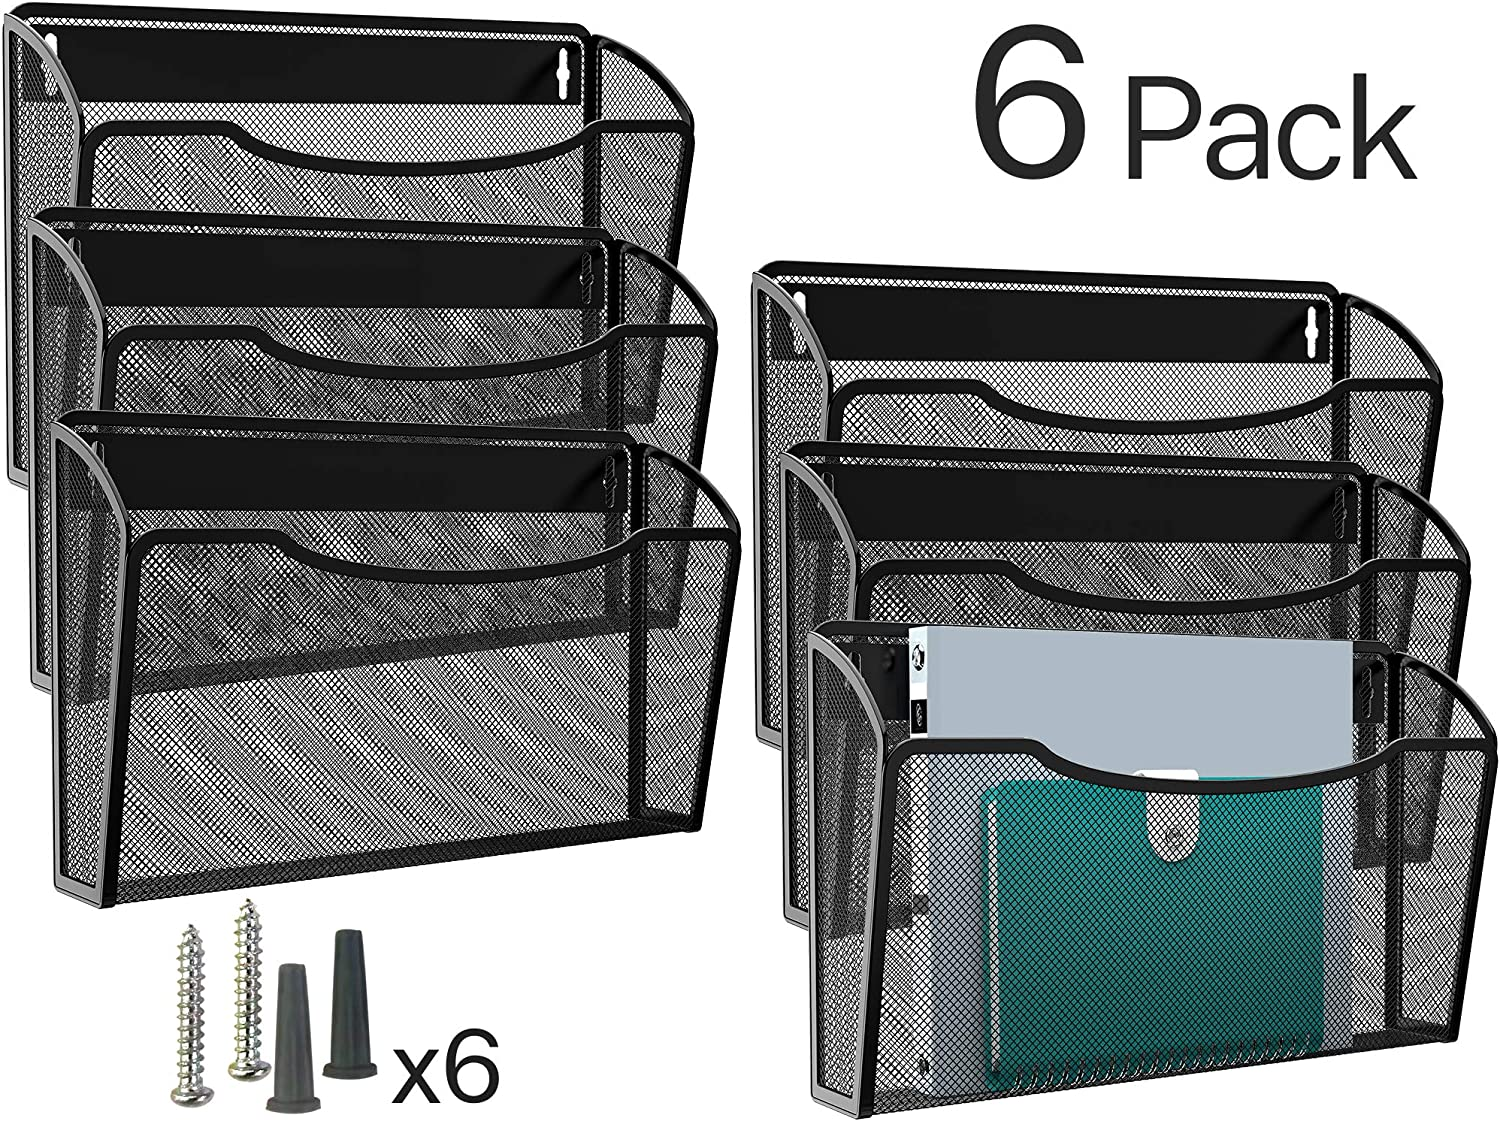 MaxGear Wall File Holder Hanging File Organizer Mail Organizers Wall Mount Paper Organizer Hanging File Holder Wall Mounted Pocket Holders for Home, Office, 6 Pack, Metal Mesh, Black